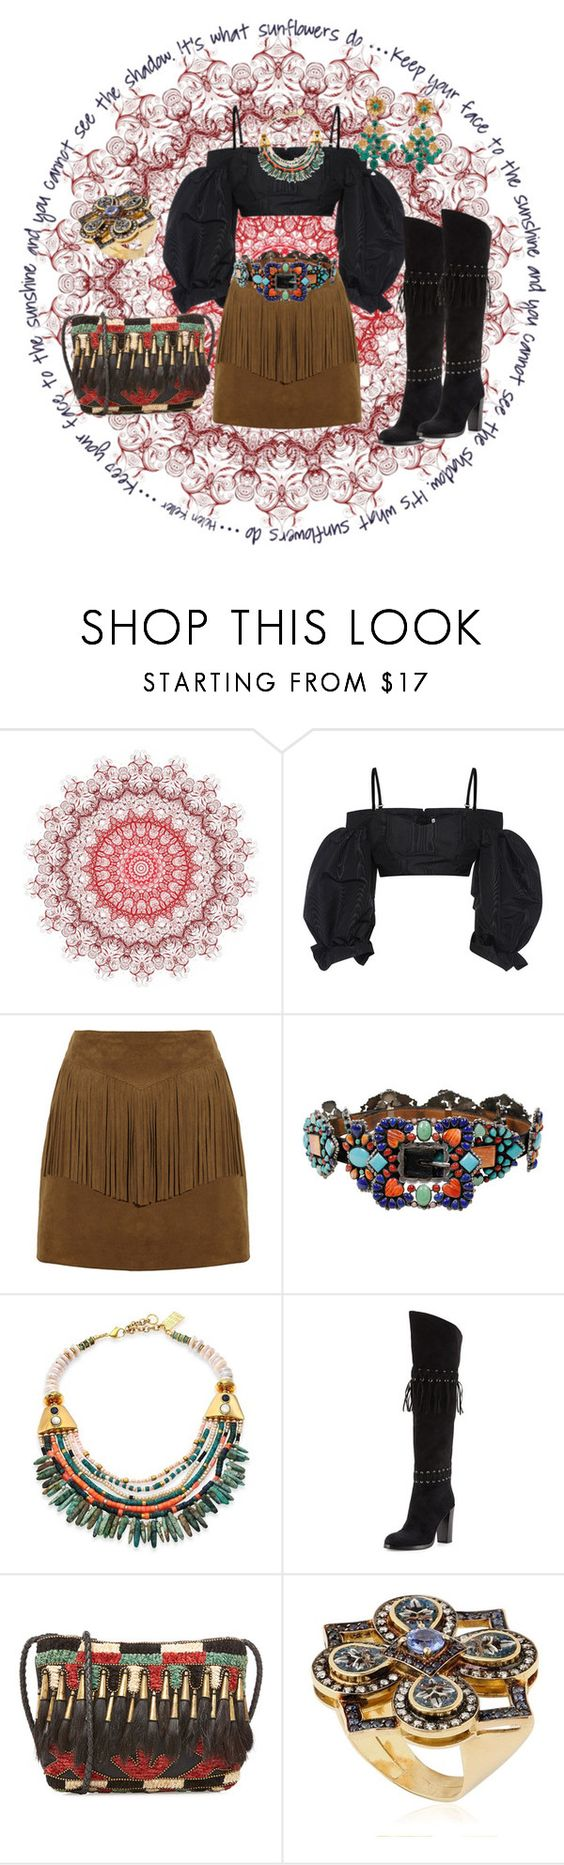 """Tribal Trivia"" by jocelyn-leonard ❤ liked on Polyvore featuring Alessandra Rich, Yves Saint Laurent, Lizzie Fortunato, Rebecca Minkoff, Antik Batik, Le Sibille and Mercantia"